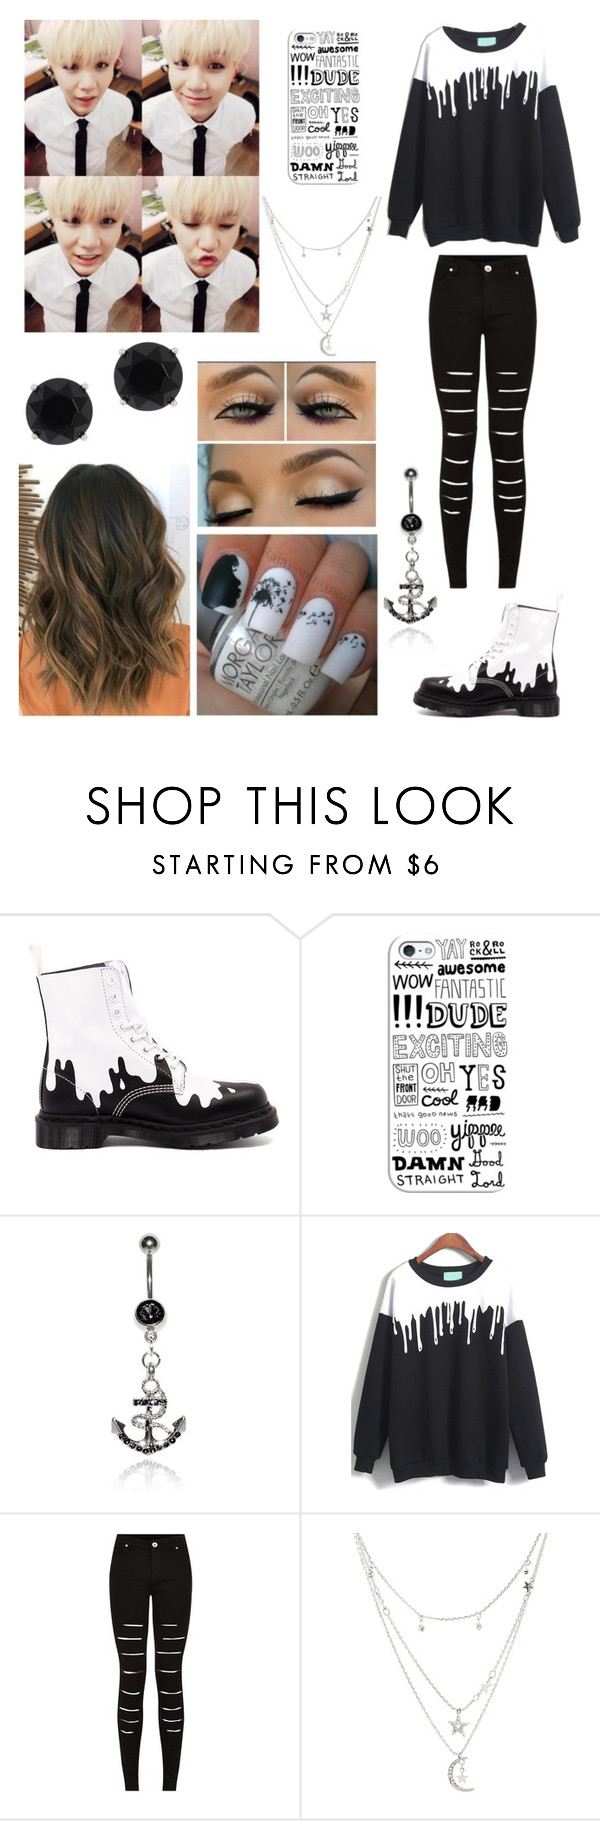 """Hangin with Suga"" by cmarnoldrr ❤ liked on Polyvore featuring Dr. Martens, Katie May, Casetify, Charlotte Russe and Anne Klein"